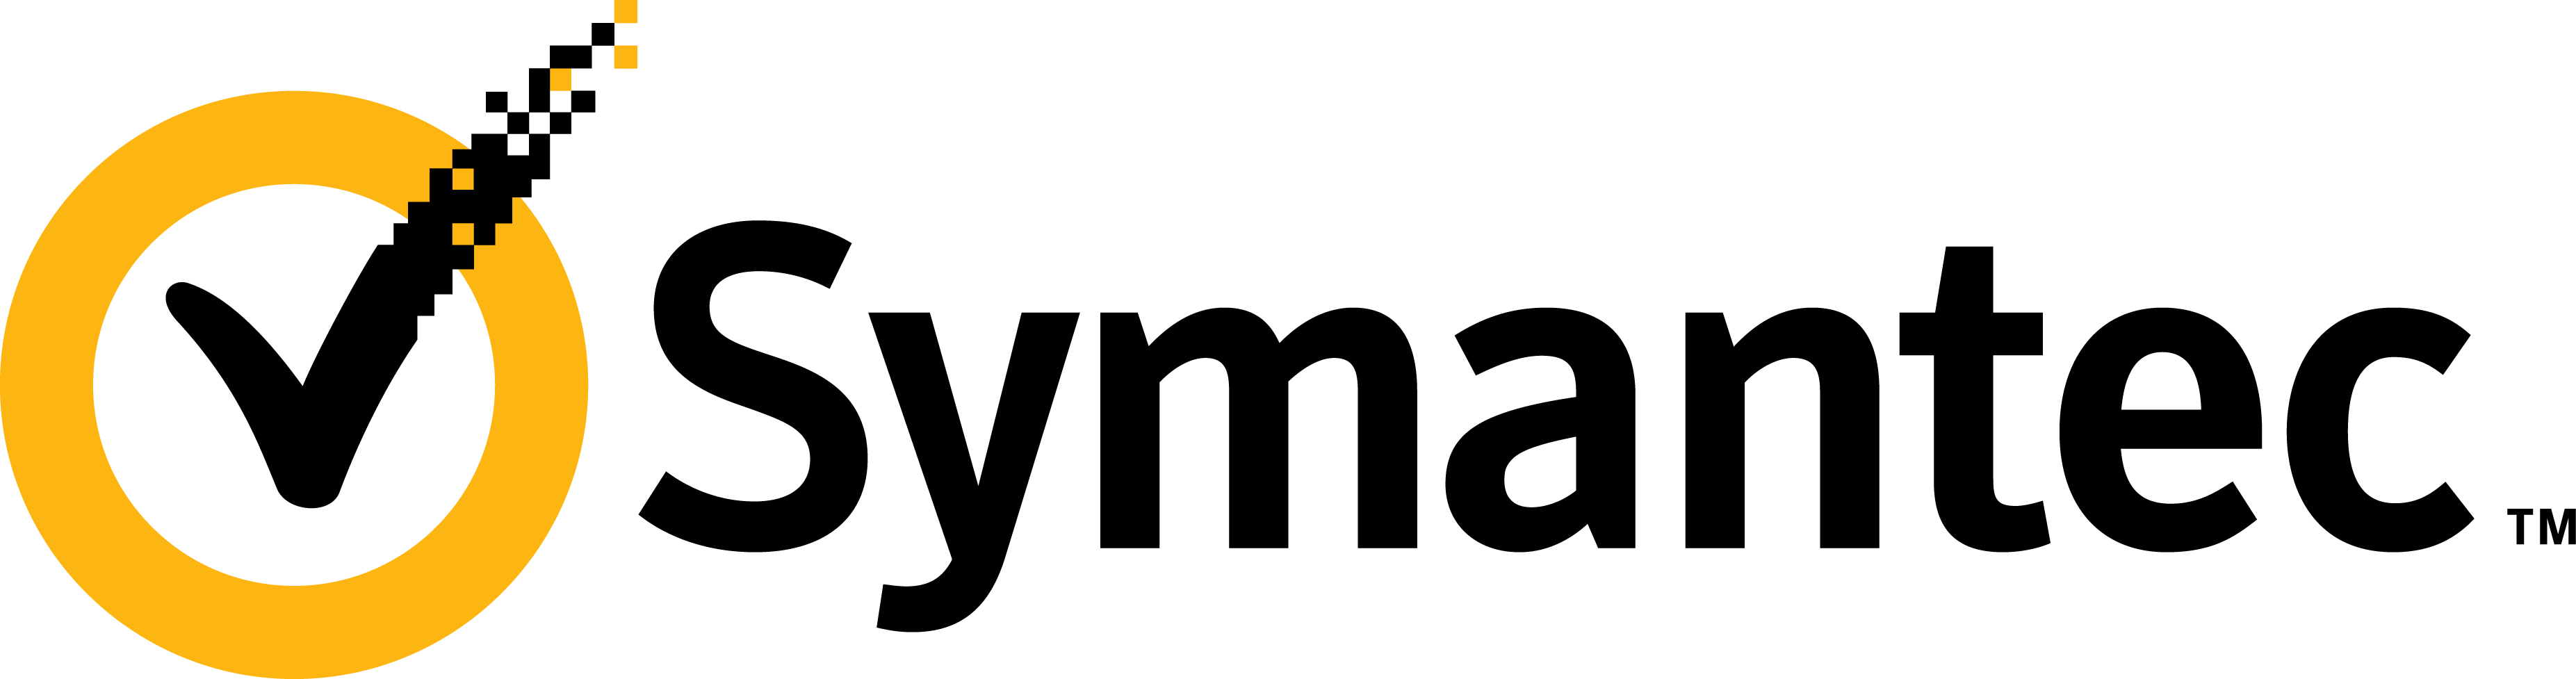 Symantec Keeping SMBs Secure